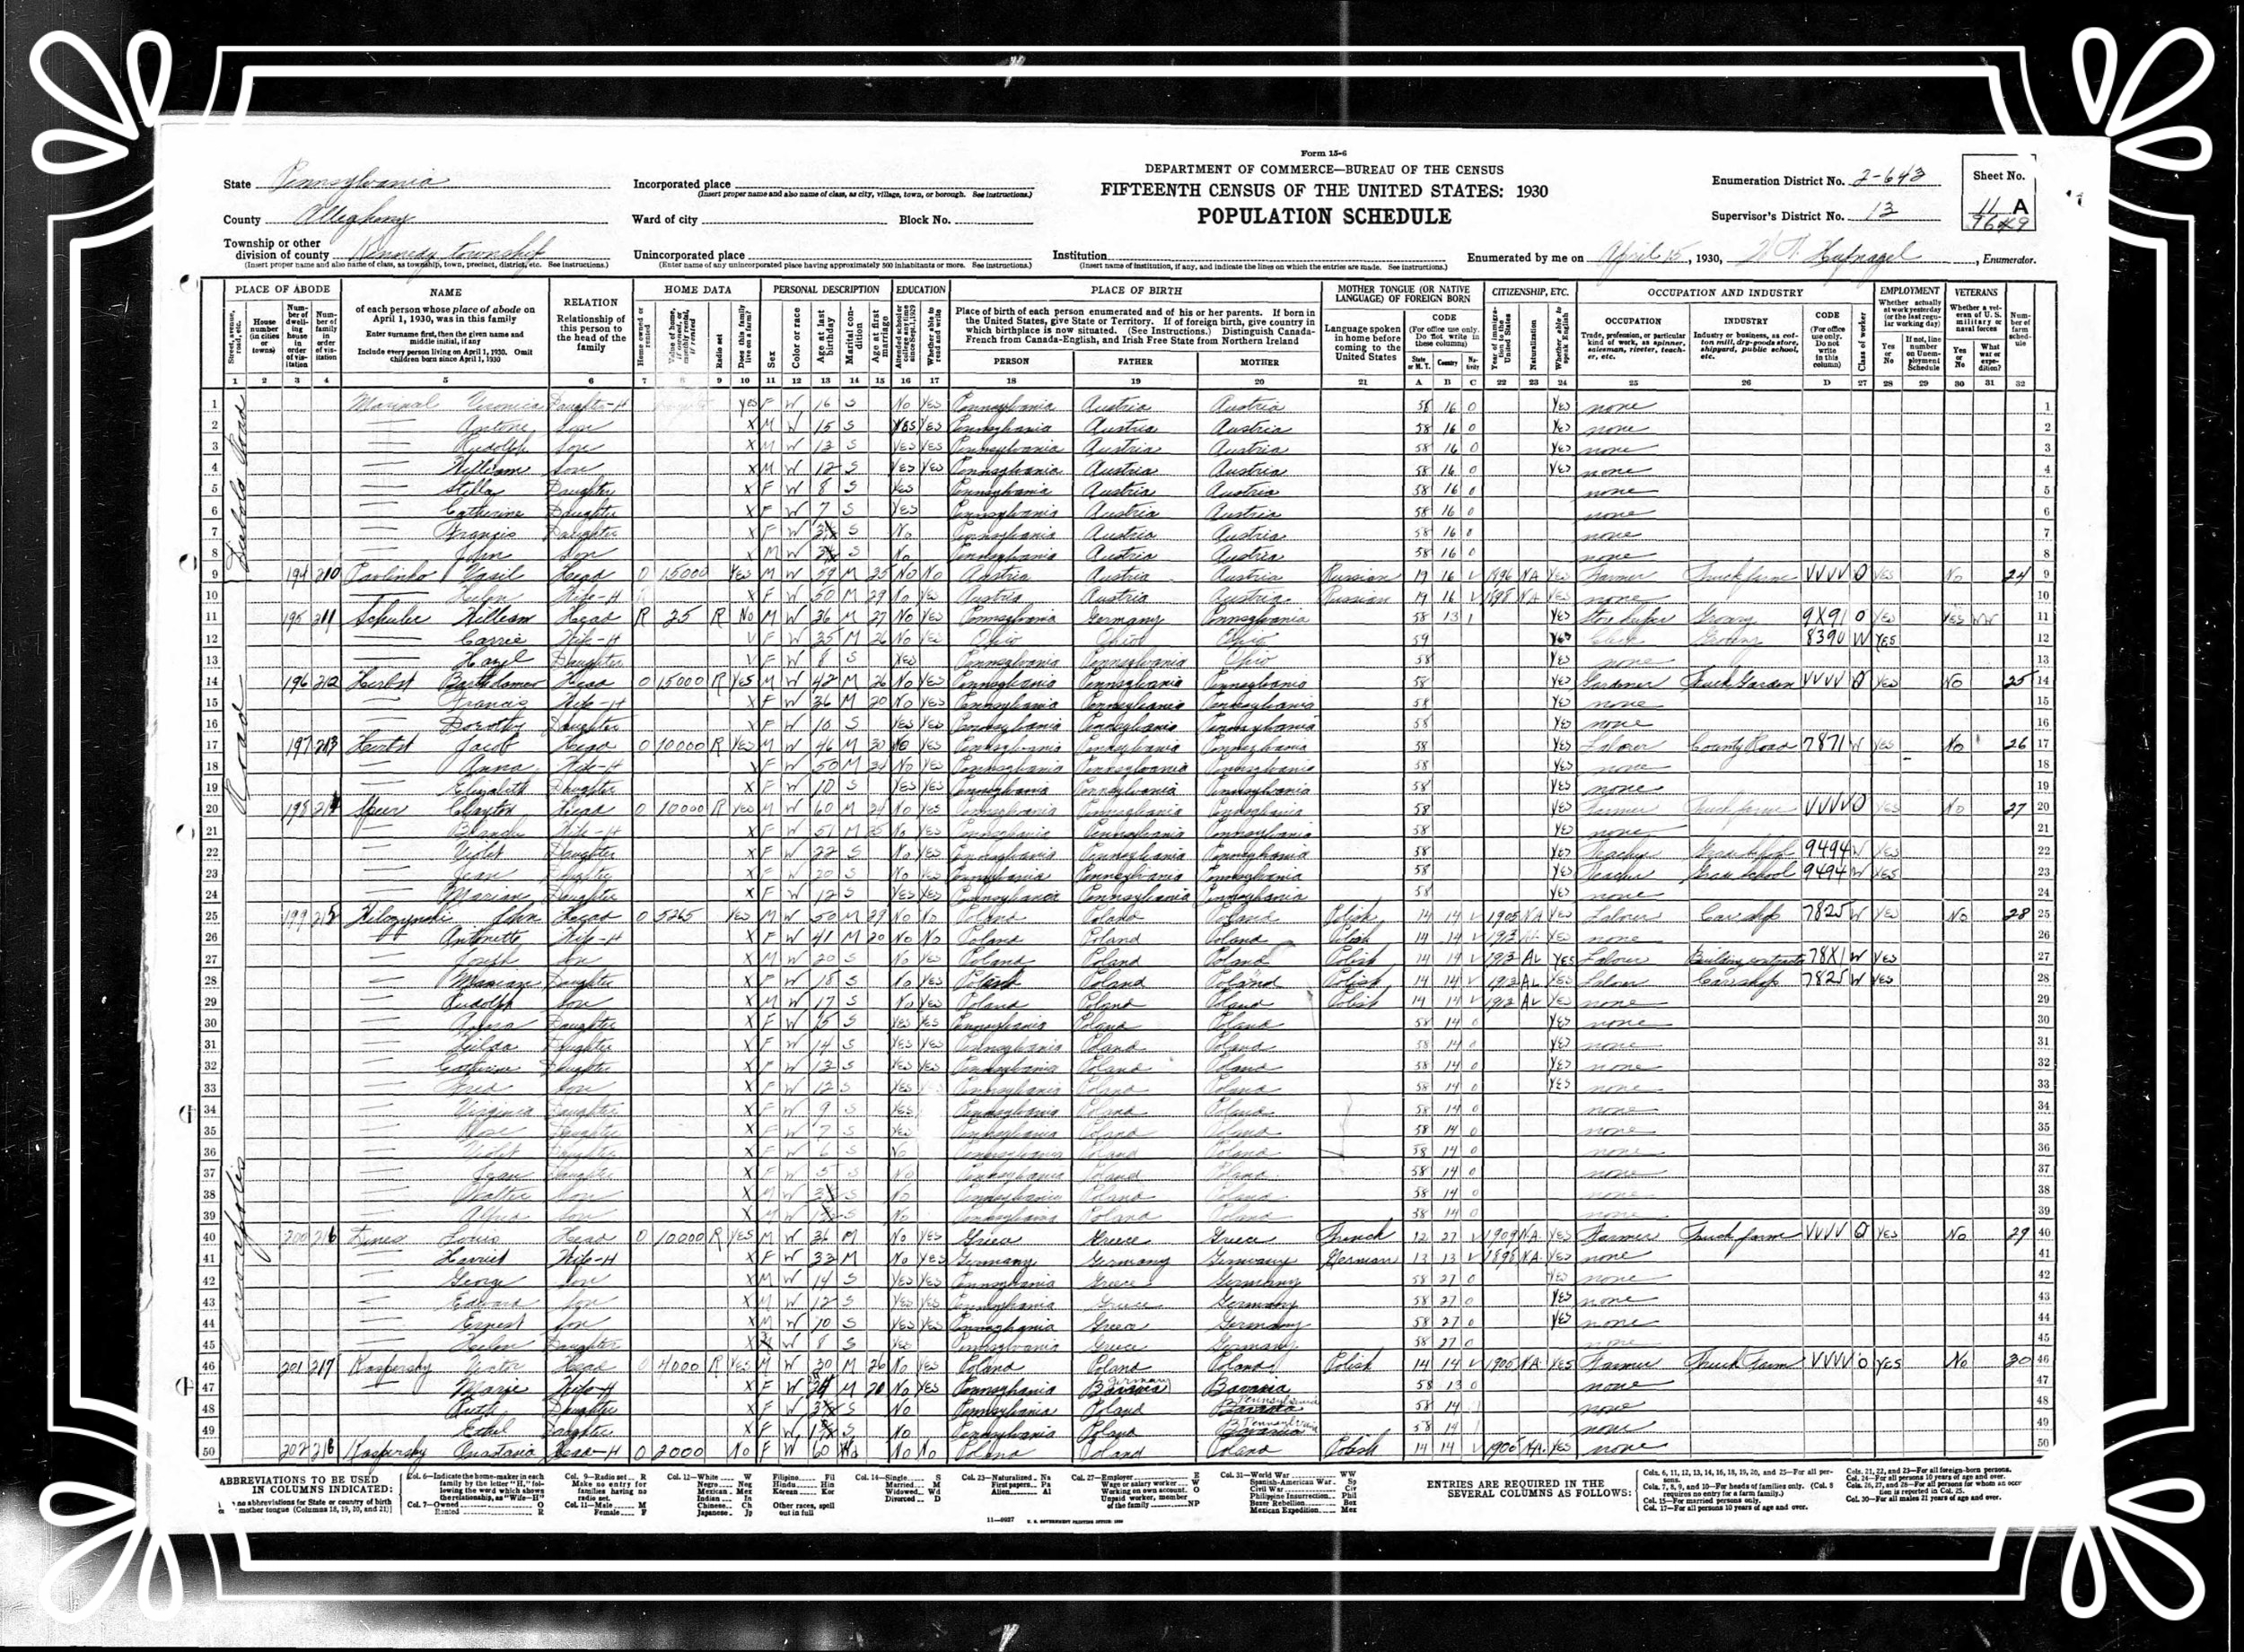 """1930 U.S. Census - Dines Family listed on """"Coraopolis Road"""" - third family from the bottom."""